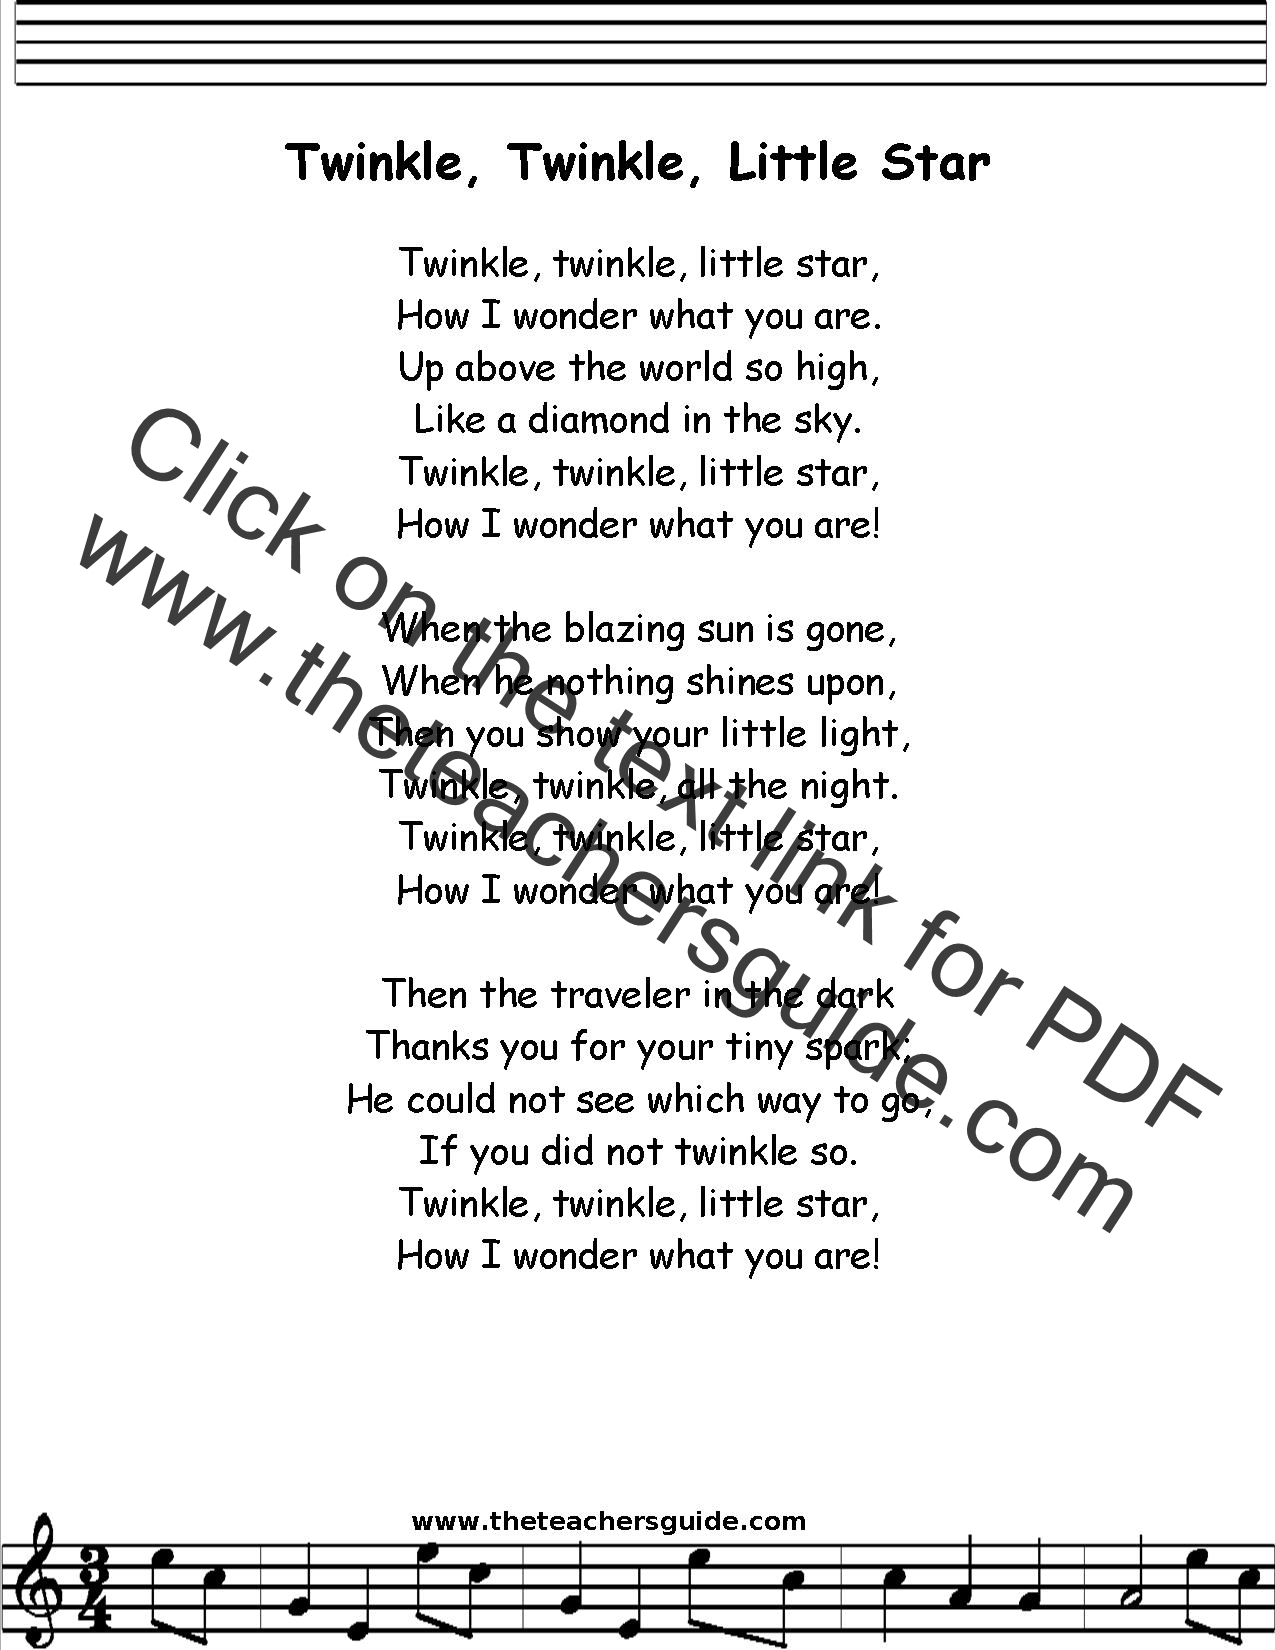 Twinkle Twinkle Little Star Lyrics Printout Midi And